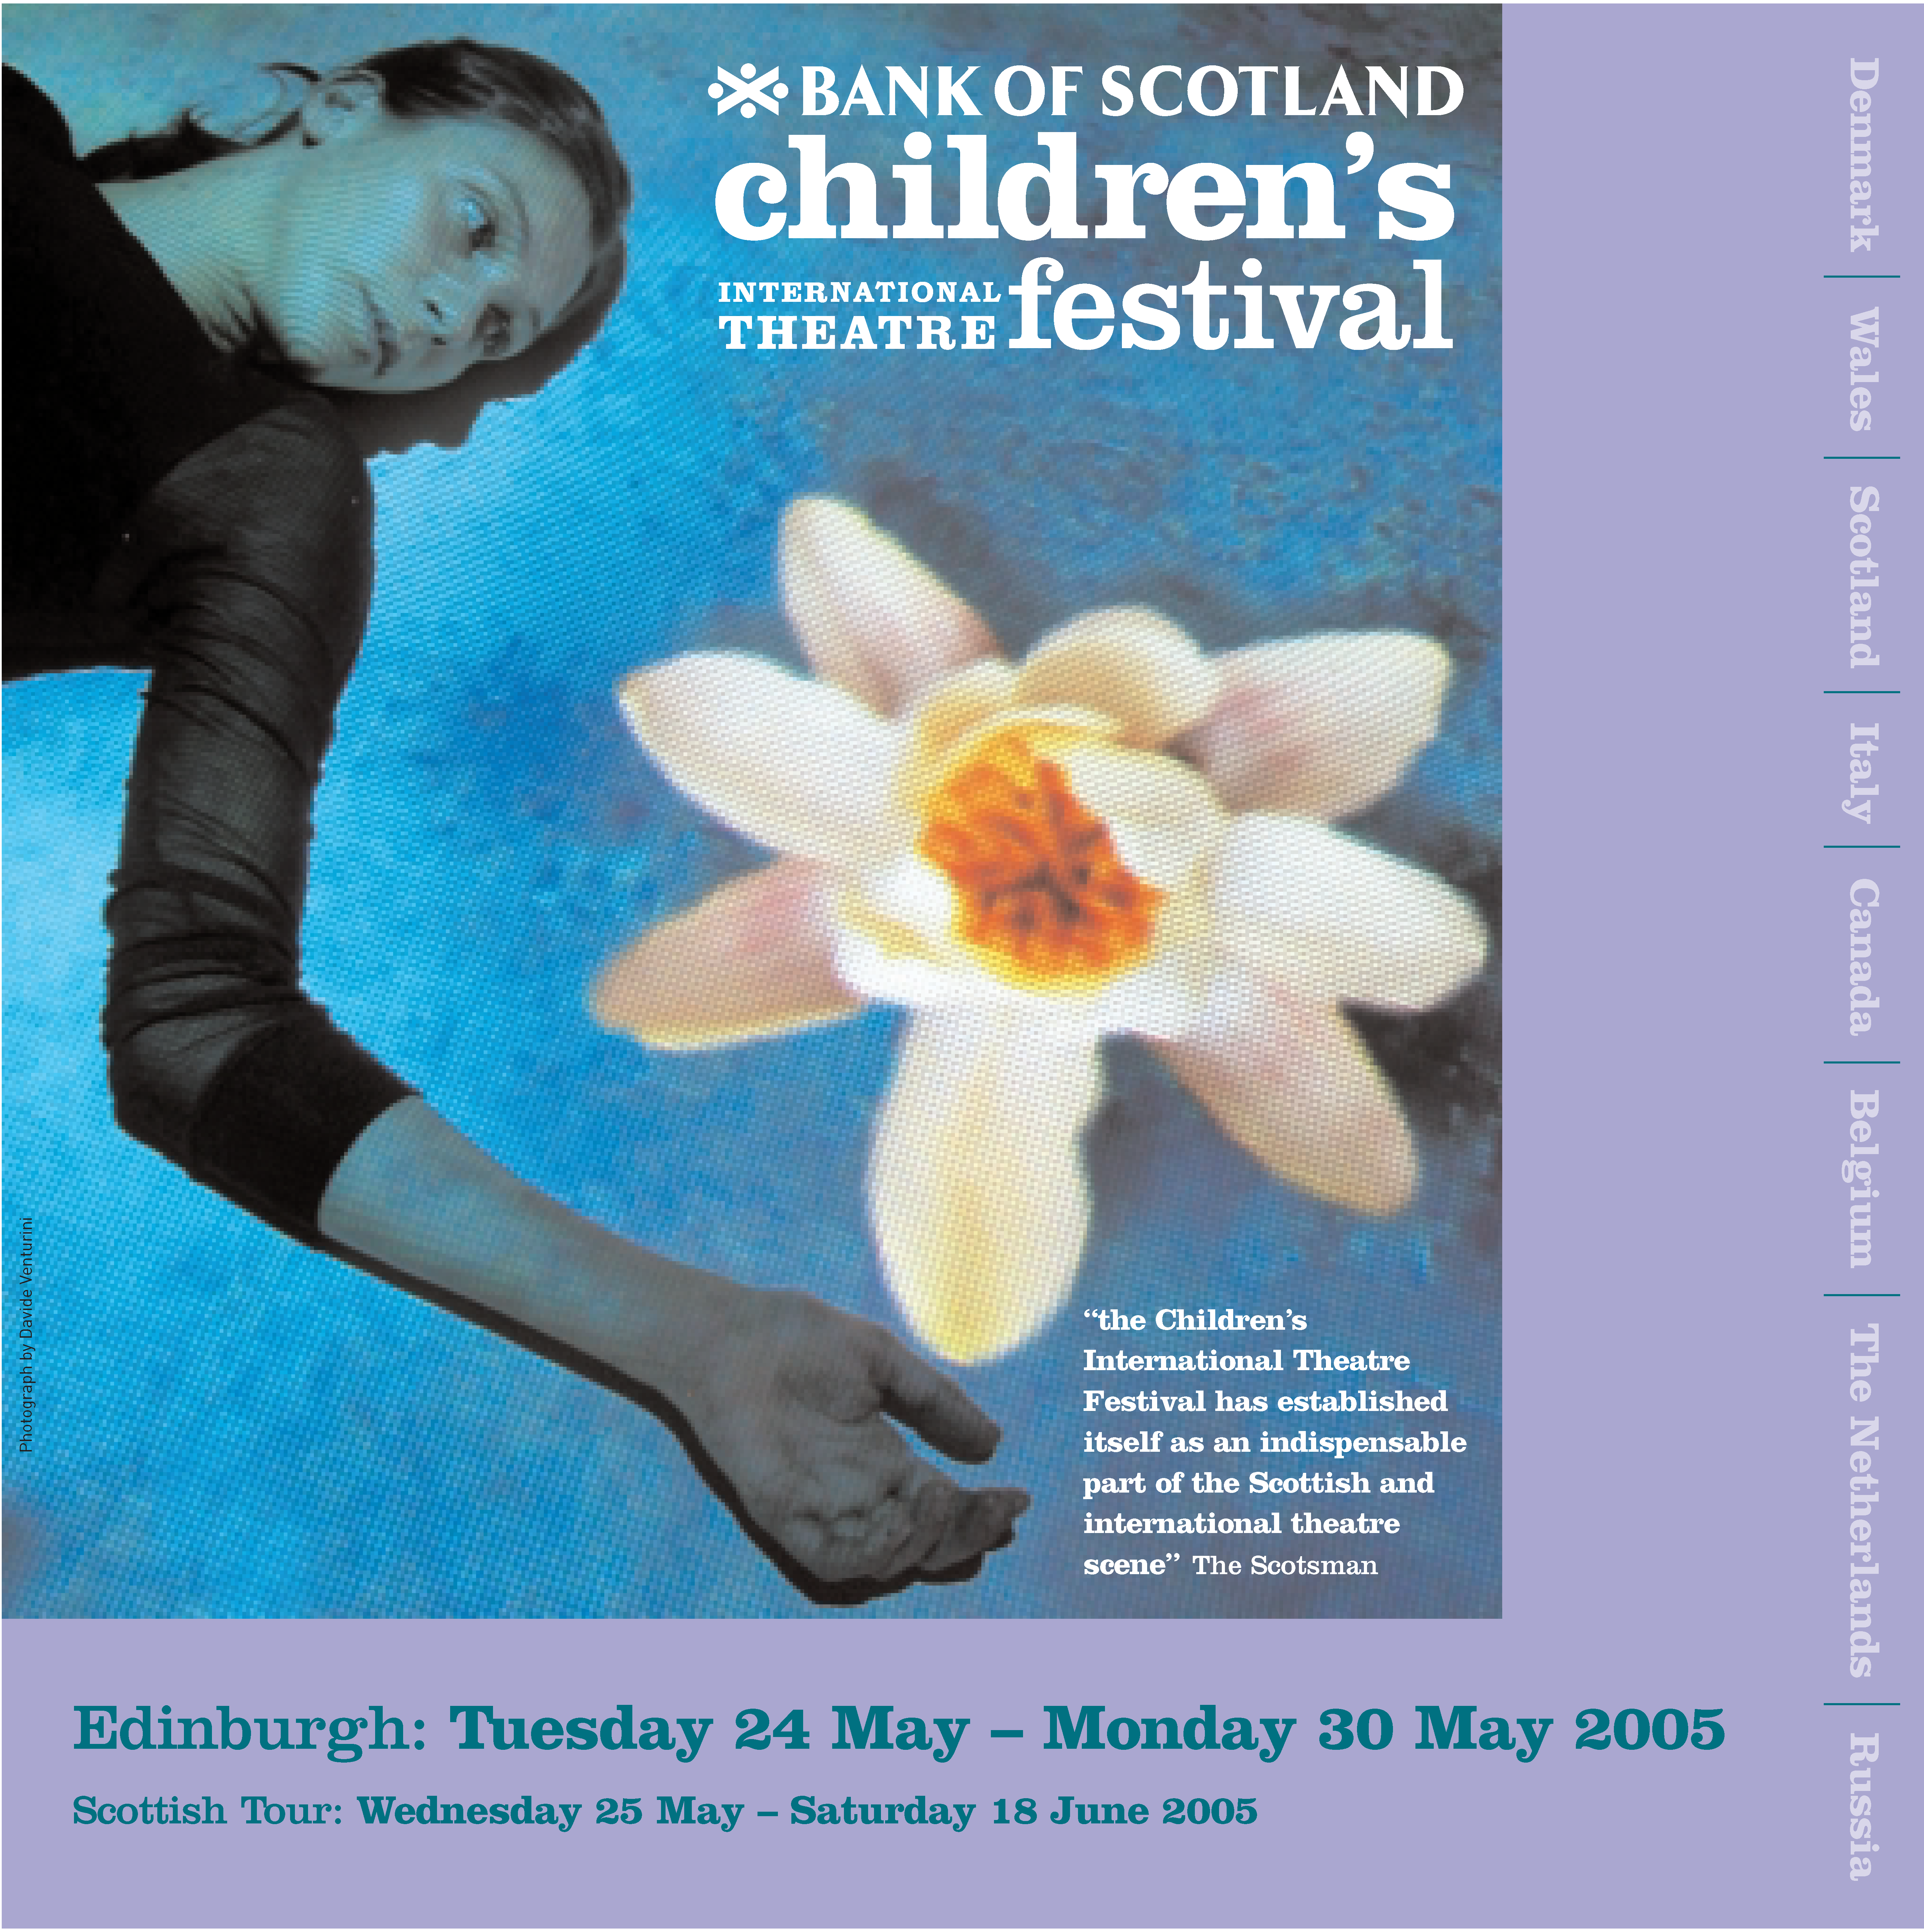 Programme front cover